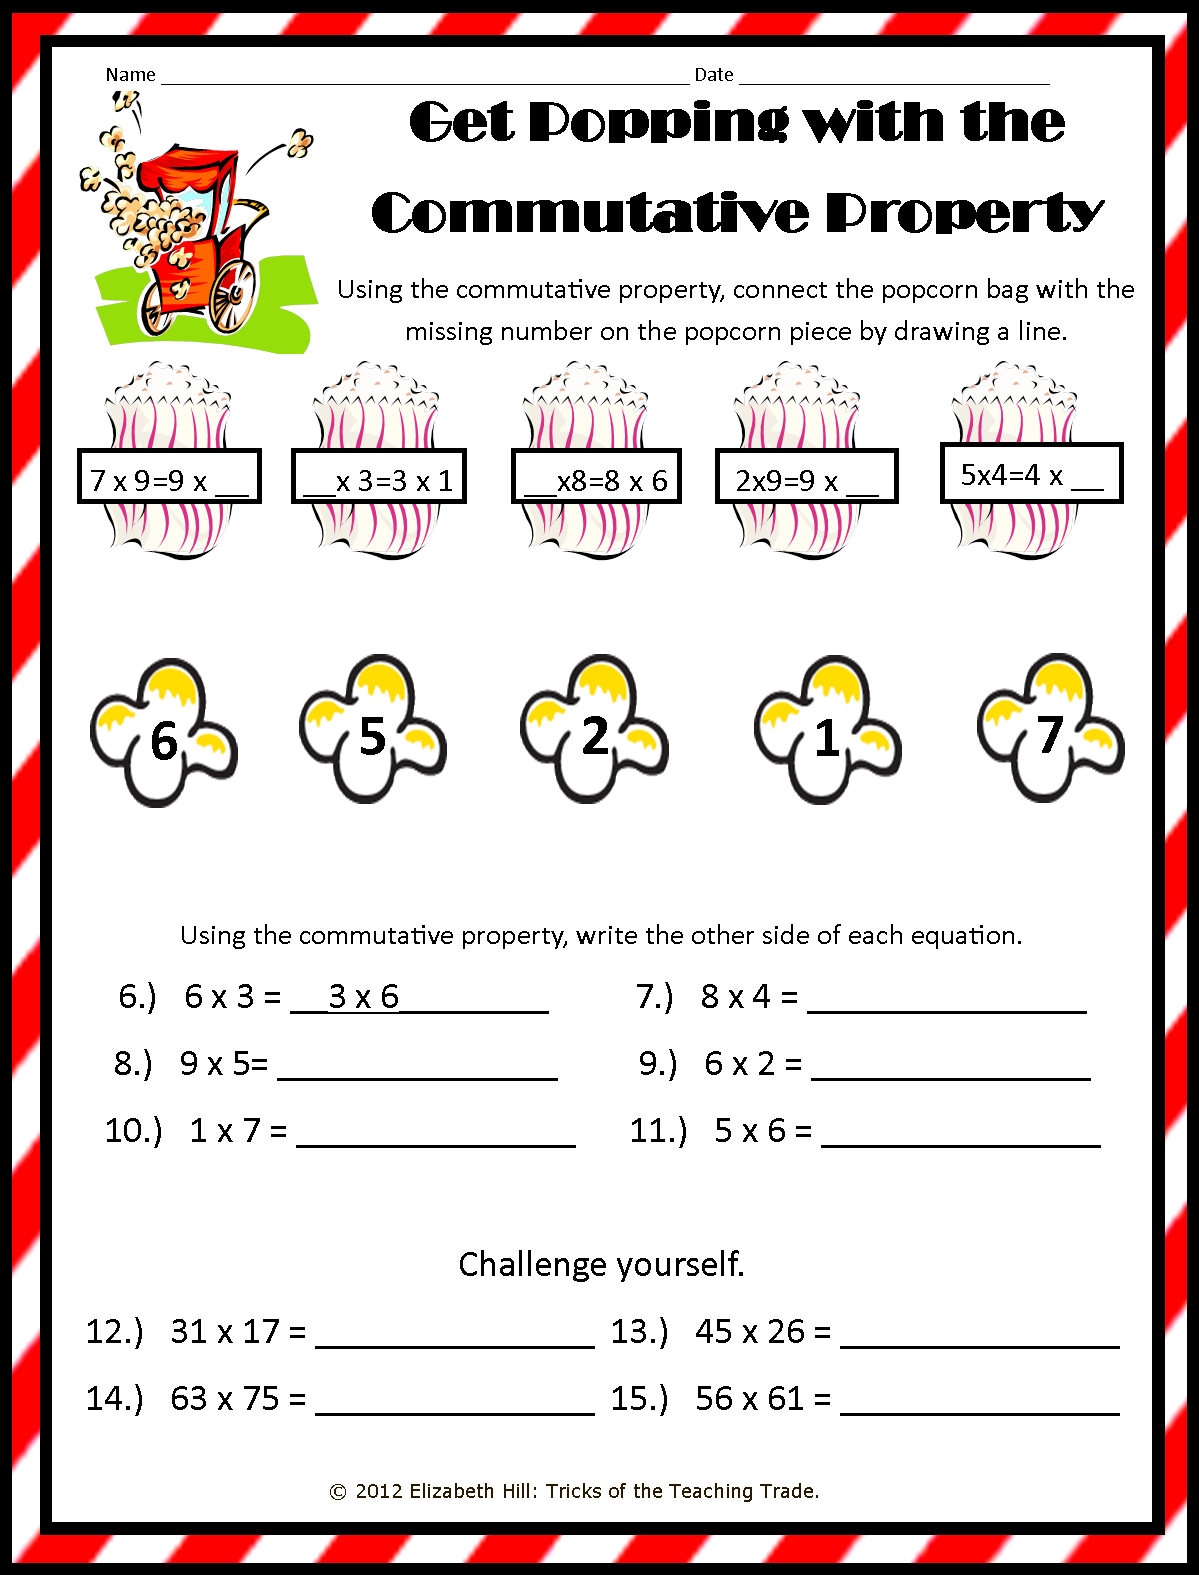 Worksheet 595800 Associative Property of Addition Worksheets – Associative Property of Addition and Multiplication Worksheets